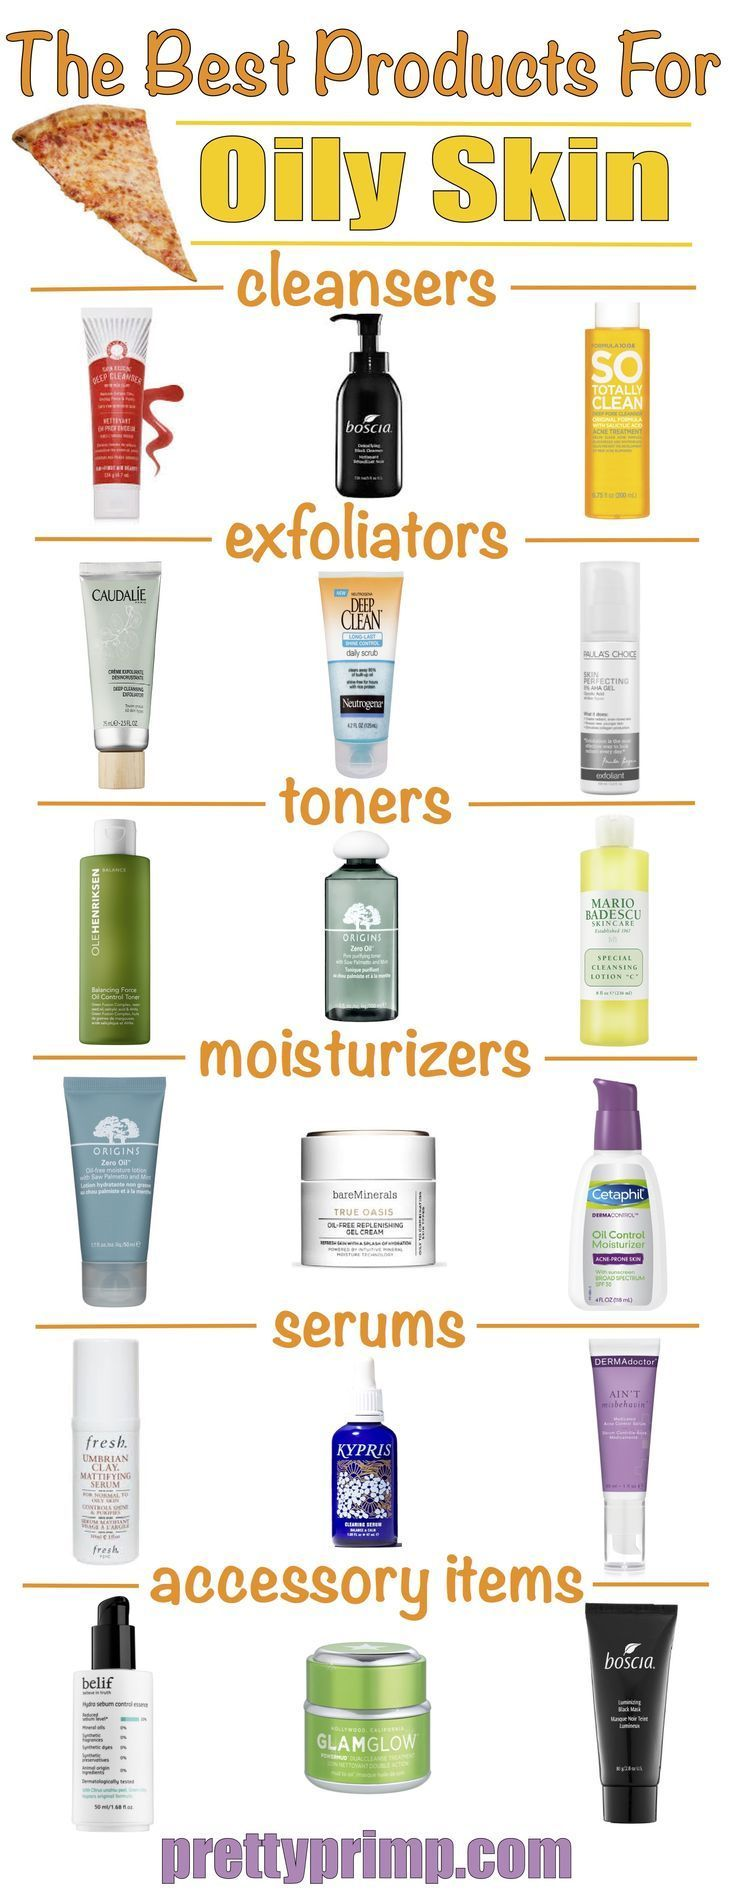 Skincare for oily skin, including the best drugstore and high end products, specifically, cleansers, exfoliators, toners, moisturizers, serums, and more for oily skin!